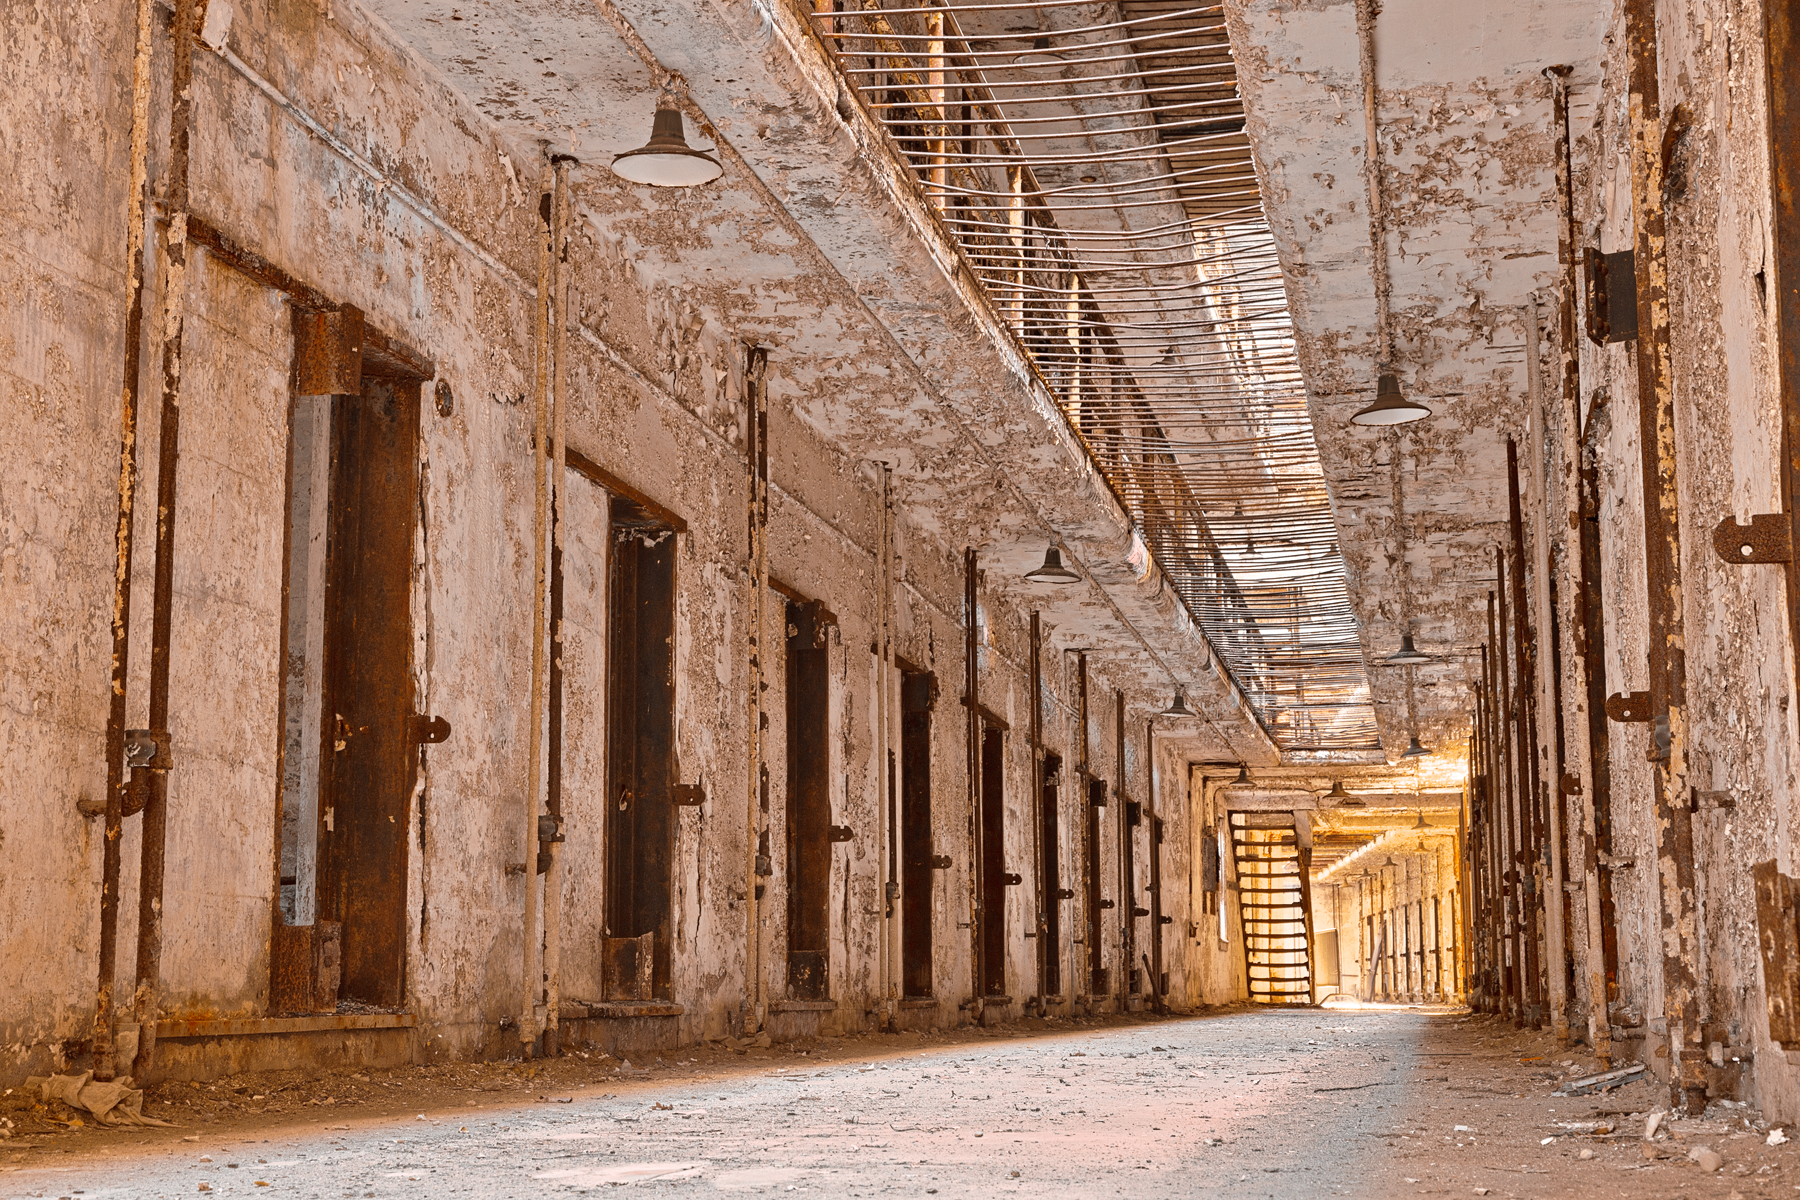 Glowing Prison corridor (Philadelphia, USA)